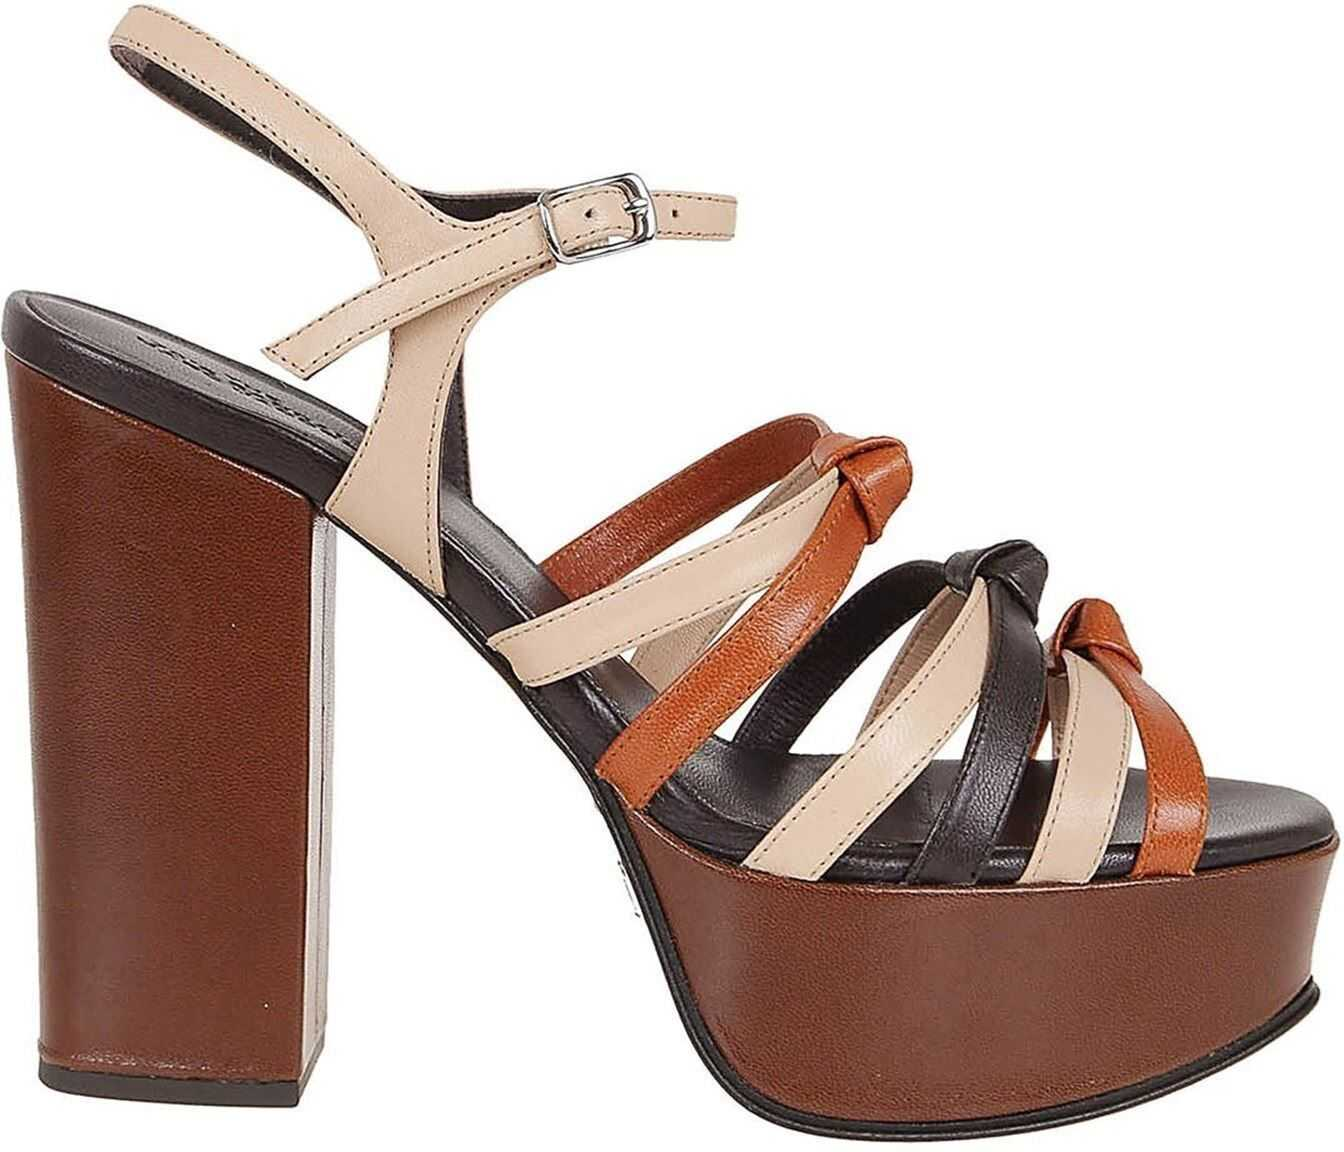 Marc Jacobs The 70S Sandals Brown